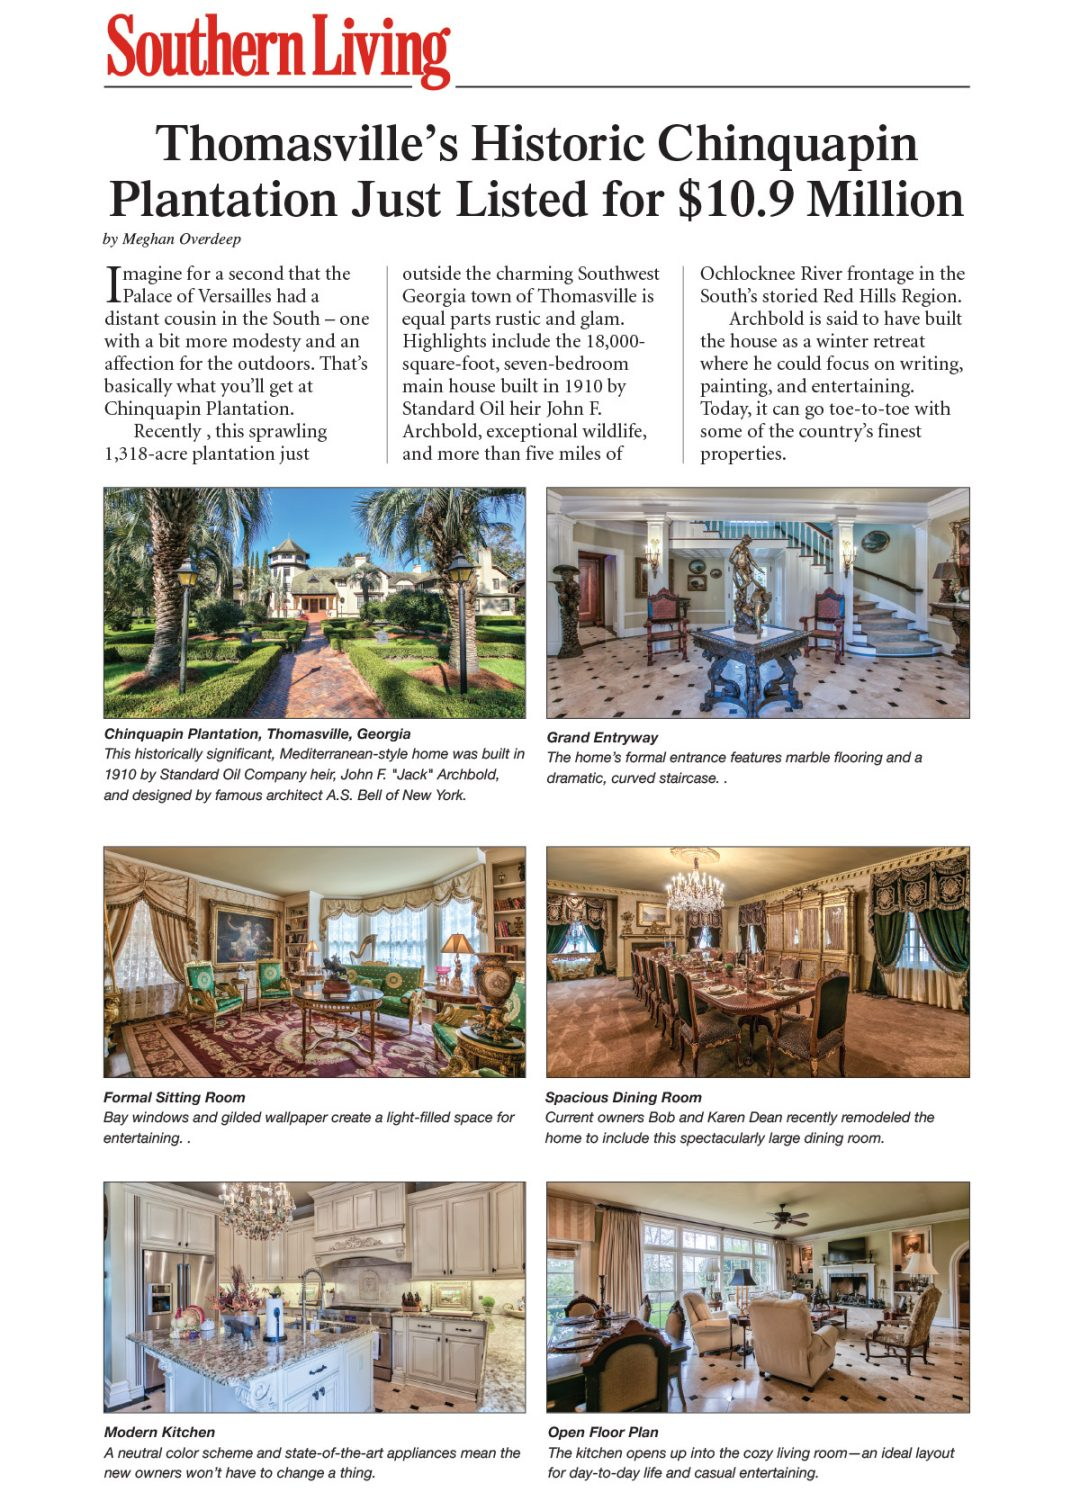 Southern Living Post